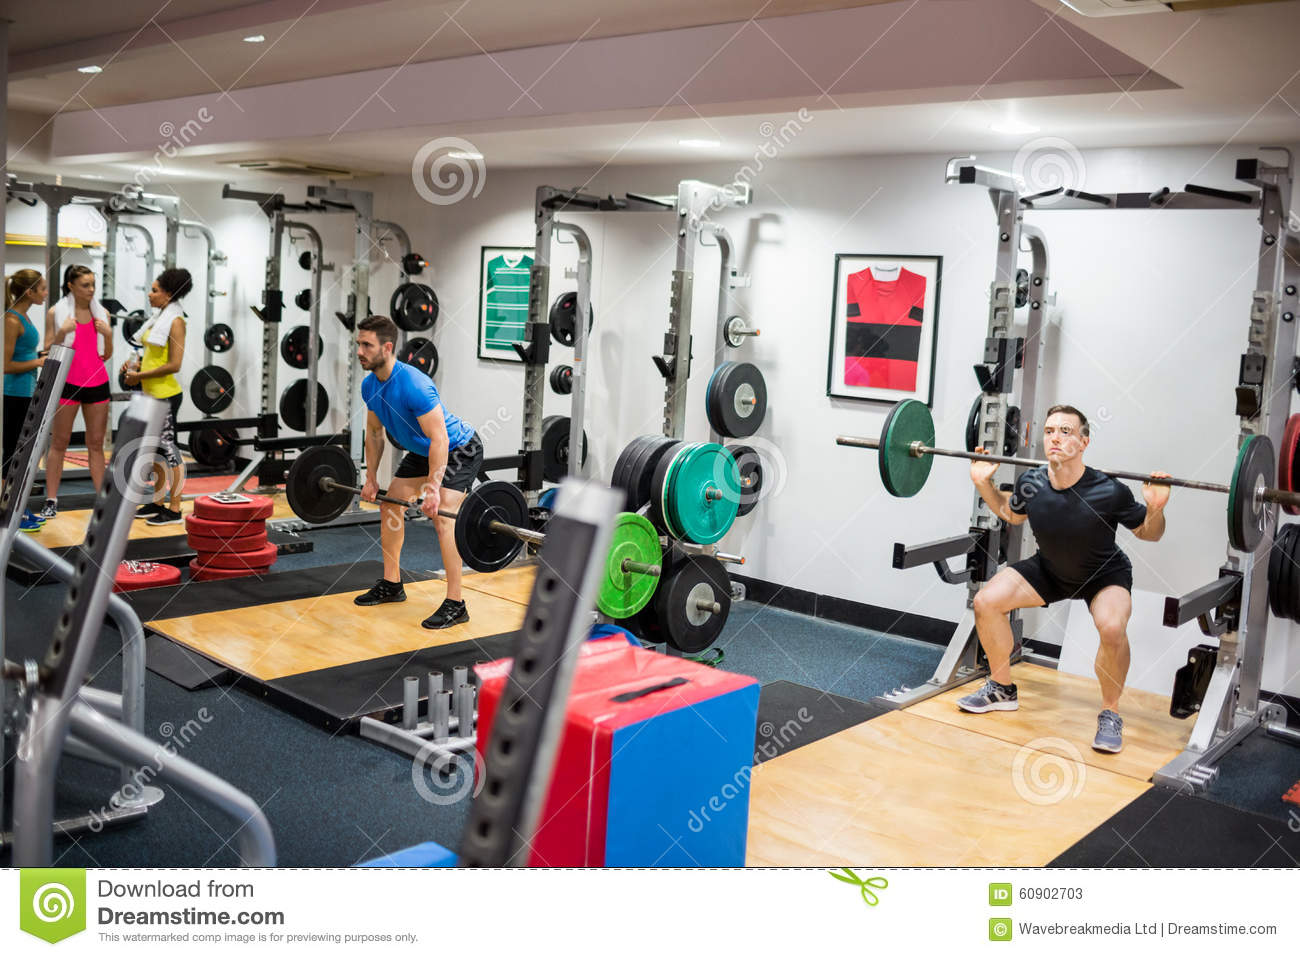 Fit People Working Out In Weights Room Stock Photo - Image ...